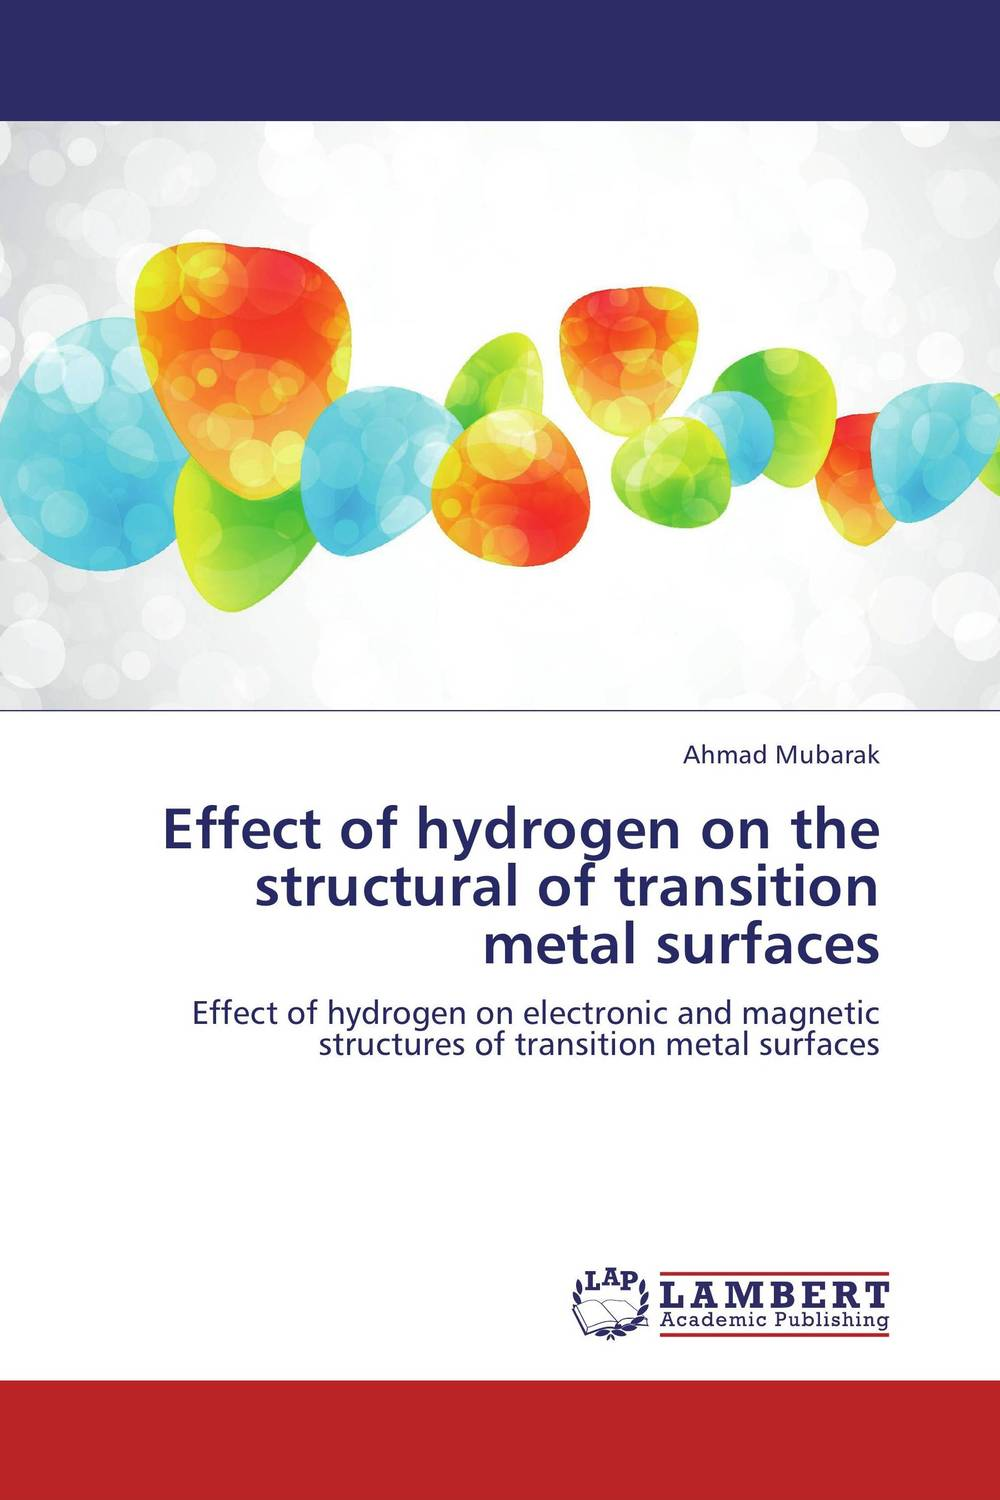 Effect of hydrogen on the structural of transition metal surfaces anil kumar ion implantation effect on hydrogen permeation